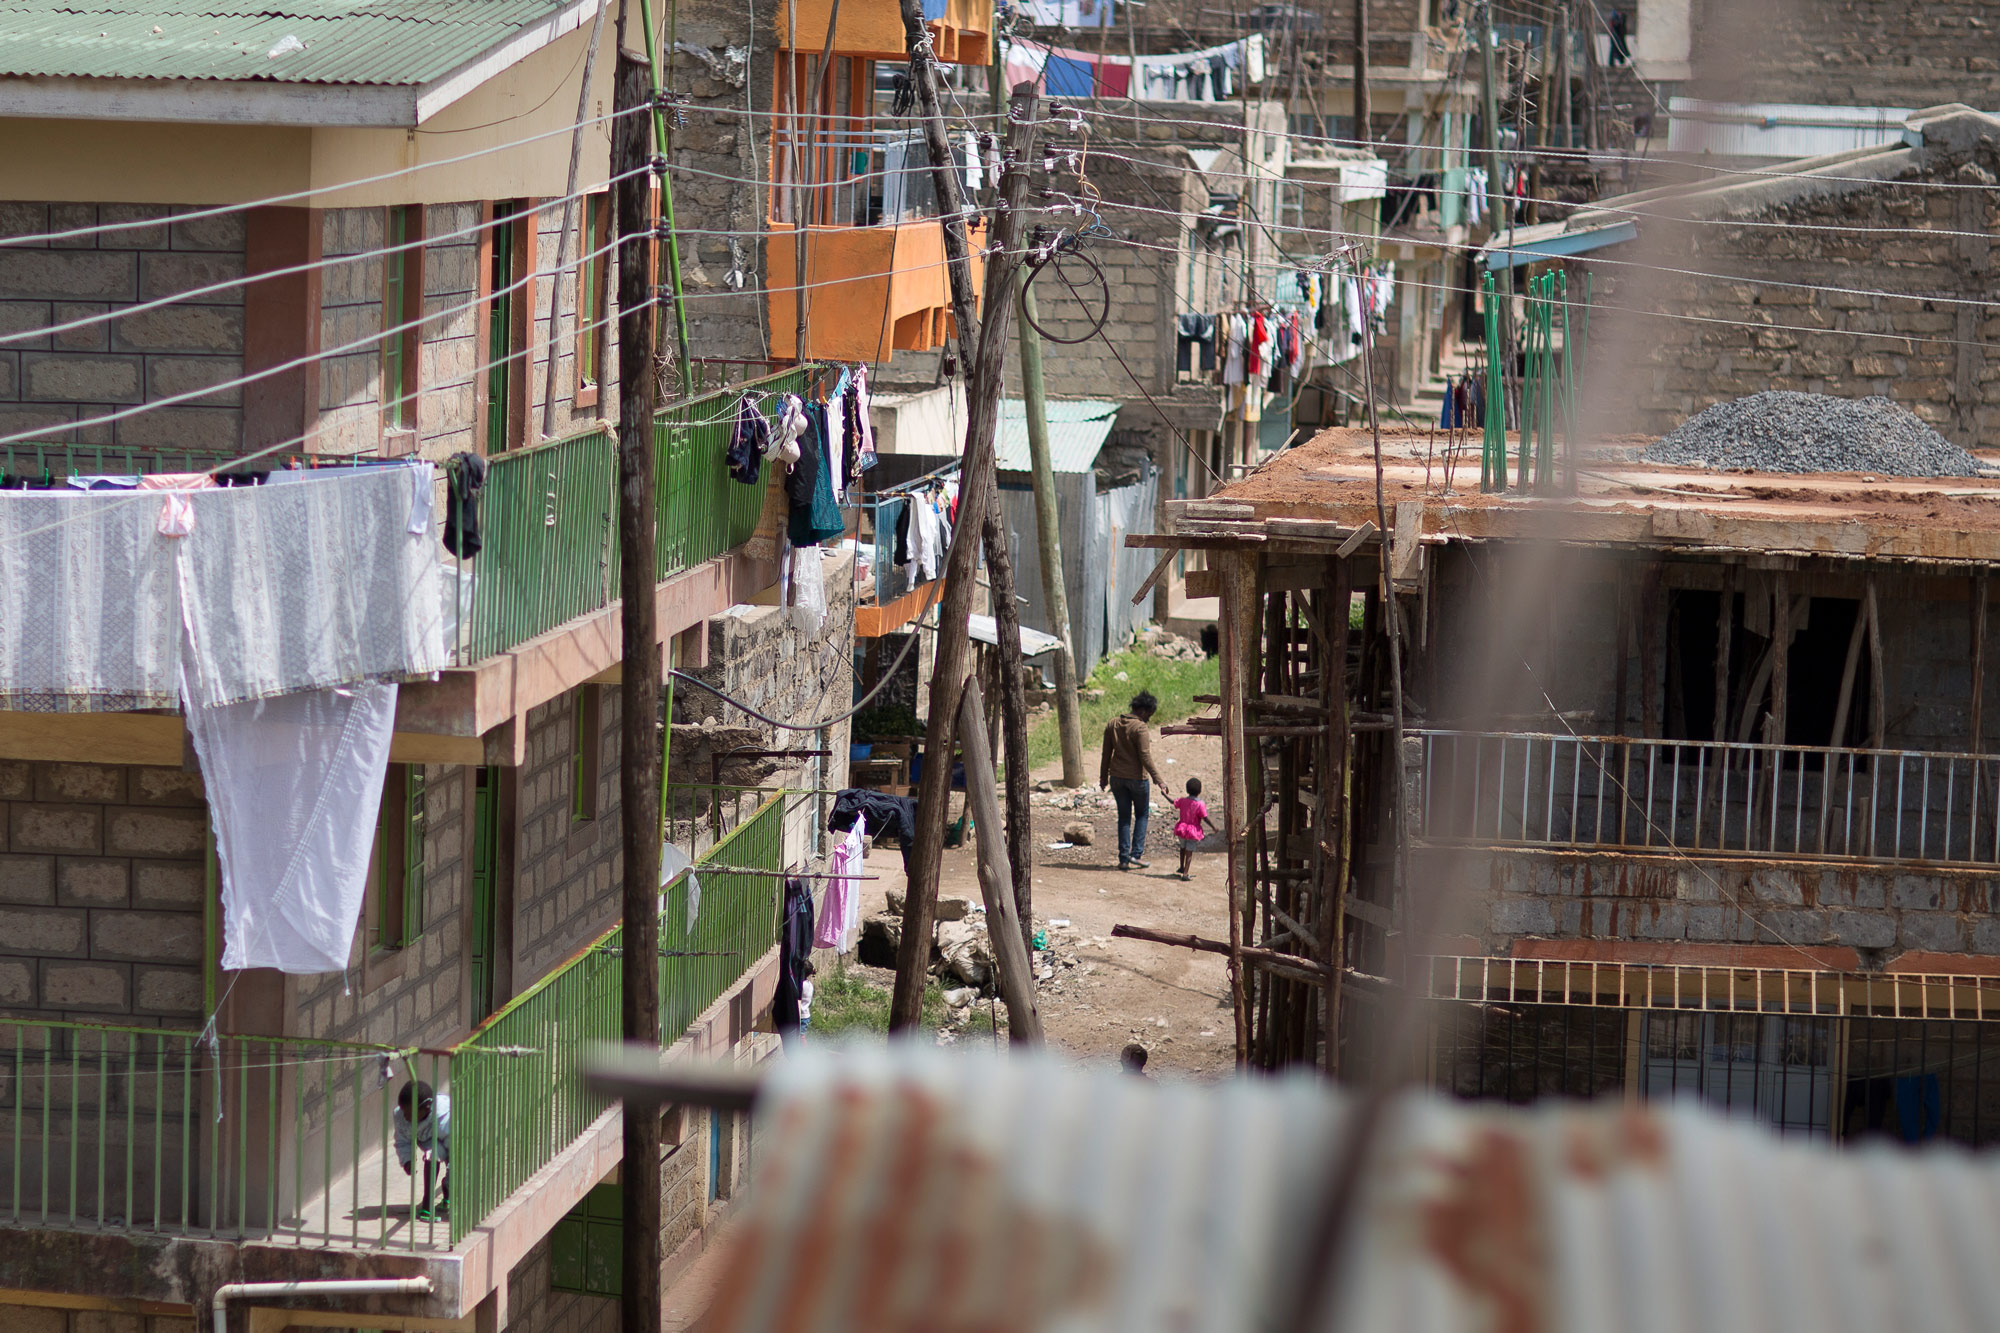 10 May 2013: A densely populated slum in Kayole, a suburb in Nairobi. (Photograph by Amy Toensing/ Corbis via Getty Images)